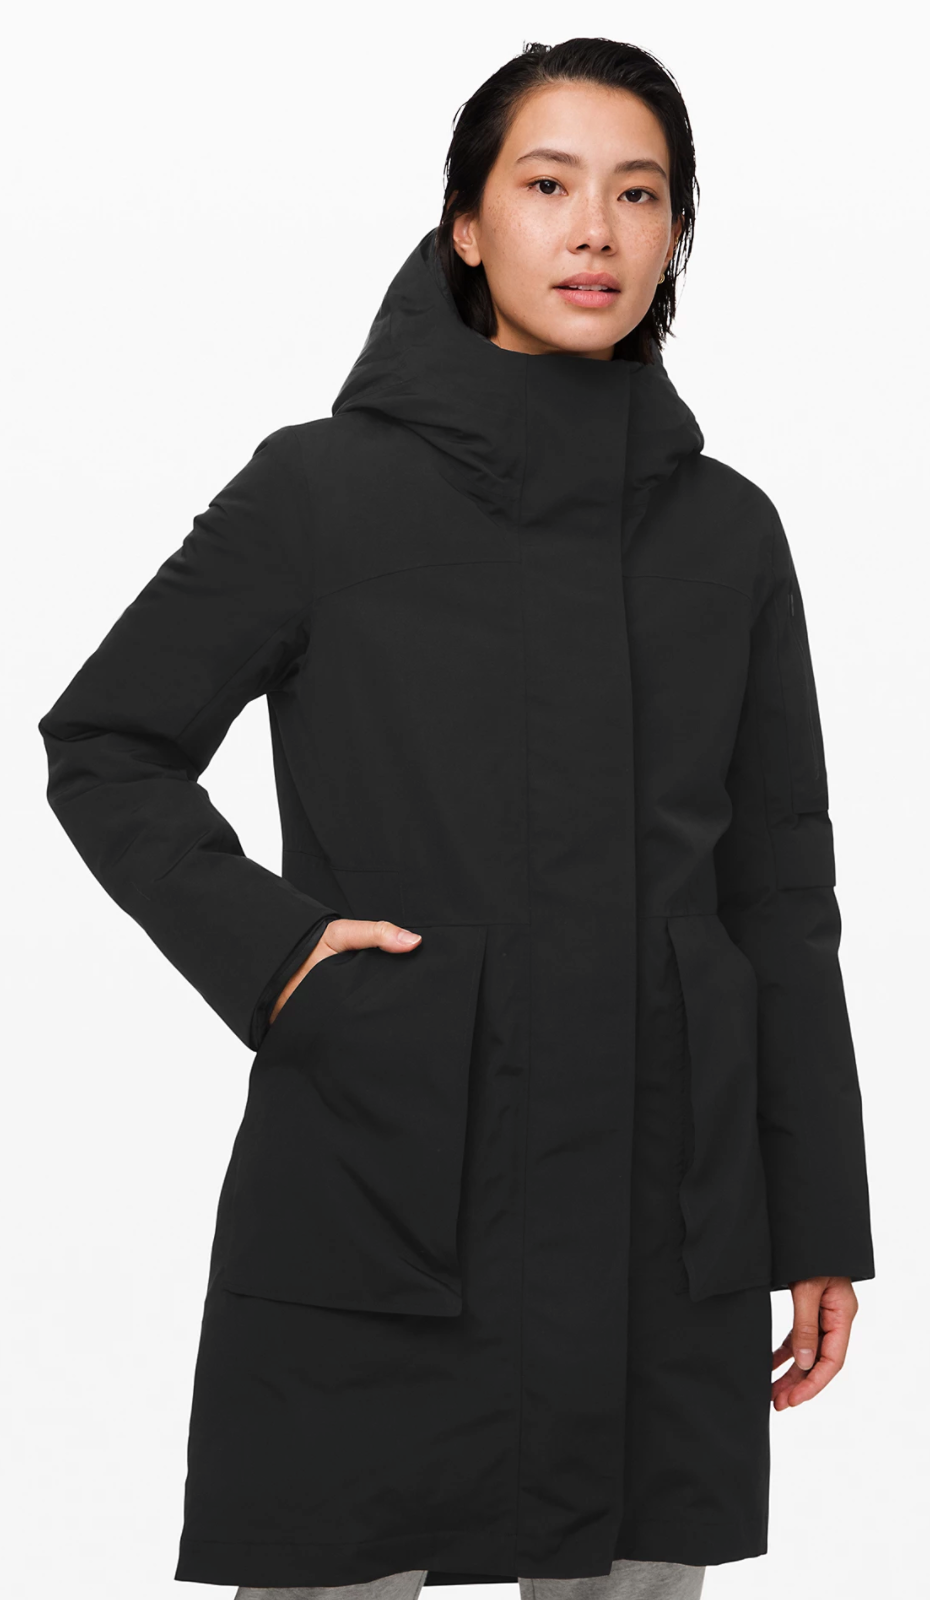 Winter Warrior 3-in-1 Parka in Black (Photo via Lululemon Athletica)